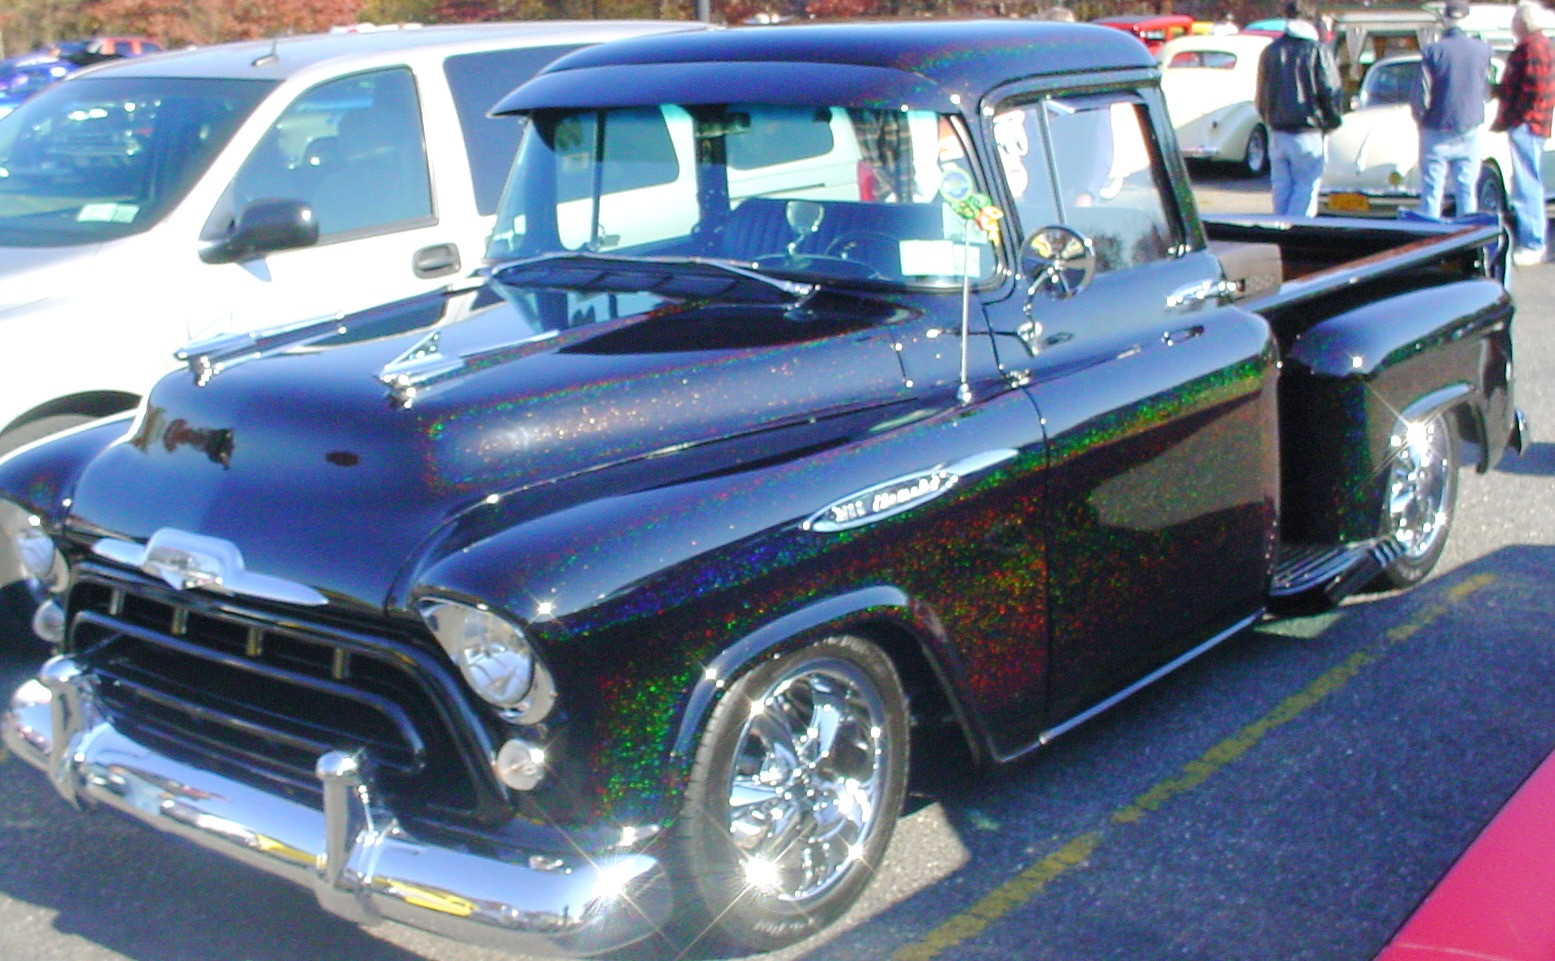 1957 Chevrolet pickup with wild paint